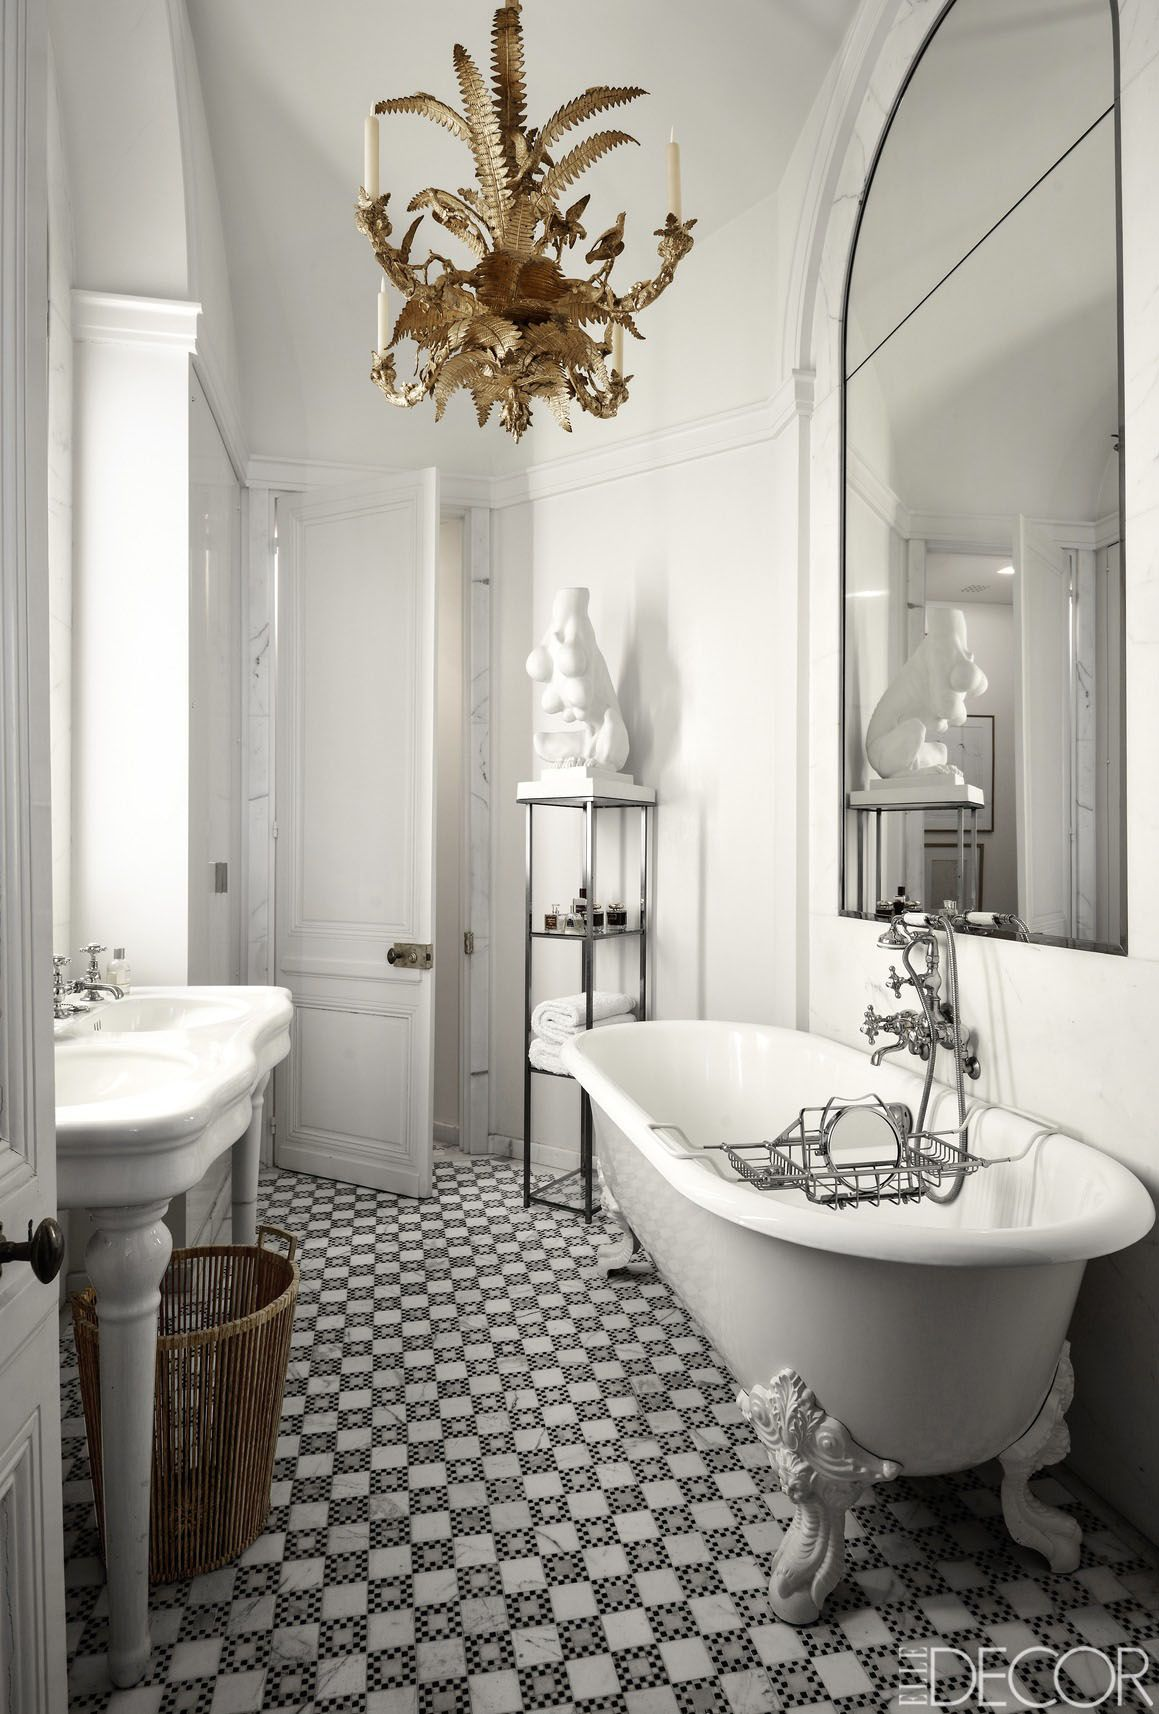 Bathroom designs black and white - Bathroom Designs Black And White 3